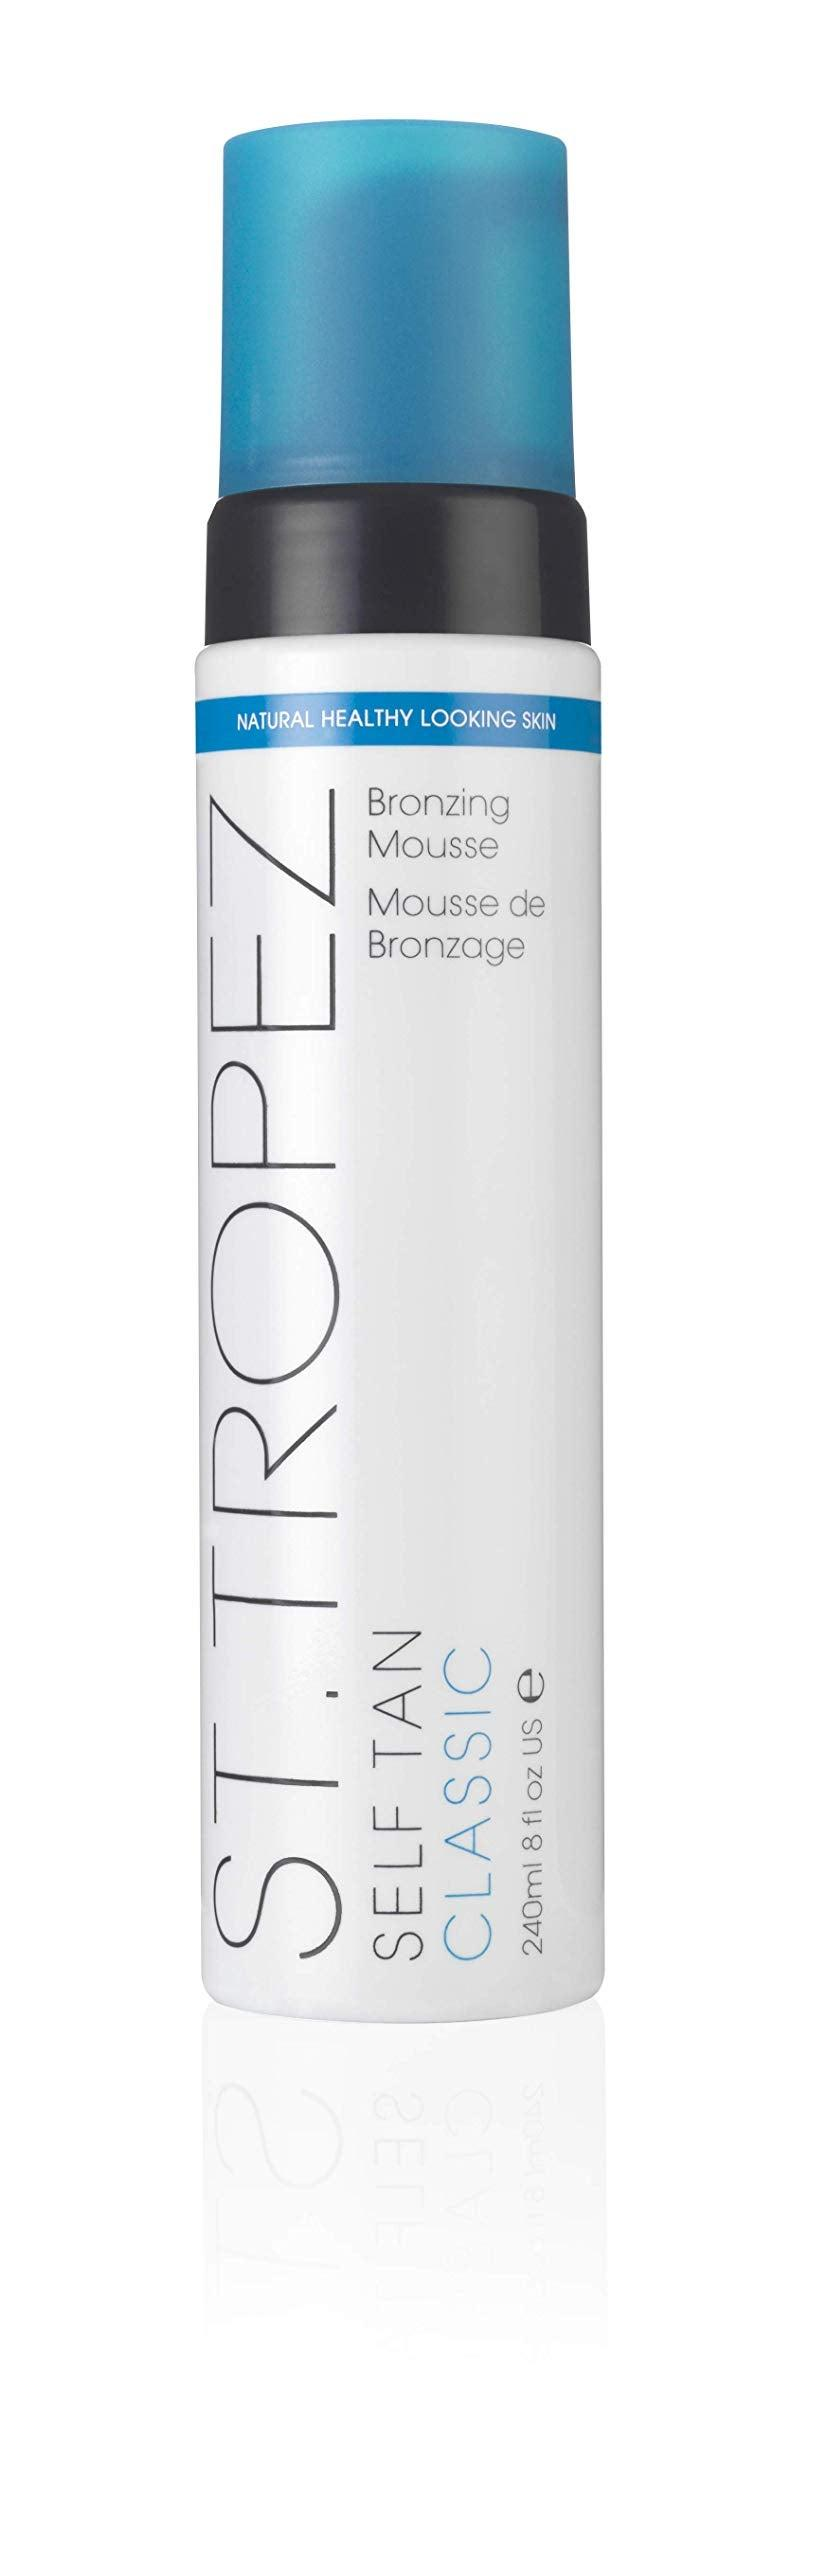 """<h3>St. Tropez Self Tan Bronzing Mousse<br></h3><br><strong>The Foaming Self Tanner</strong><br><br>It's no wonder St. Tropez's iconic tanning mousse has won over legions of fans; the bestselling product doesn't have That Weird Fake Tan Smell, lasts up to a week, and works on just about everyone. Check, check, and check.<br><br><strong>The Hype:</strong> 4.4 out of 5 stars and 3,050 reviews on <a href=""""https://www.amazon.com/St-TROPEZ-Self-Bronzing-Mousse/dp/B000S7ZMDA?th=1"""" rel=""""nofollow noopener"""" target=""""_blank"""" data-ylk=""""slk:Amazon"""" class=""""link rapid-noclick-resp"""">Amazon</a><br><br><strong>Reviewers Say: </strong>""""So many tanners; so few that are actually great, but this one is. Great natural-looking tan (with no orange overtones) and most importantly — this does not have that self tanner smell. It fades evenly — not blotchy at all. And lasts 5-7 days easily. This is the best there is and I've tried other expensive brands. I always come back to this."""" — Vespucci, Amazon Reviewer<br><br><strong>St. Tropez</strong> Self Tan Bronzing Mousse, $, available at <a href=""""https://amzn.to/2UbXqZR"""" rel=""""nofollow noopener"""" target=""""_blank"""" data-ylk=""""slk:Amazon"""" class=""""link rapid-noclick-resp"""">Amazon</a>"""